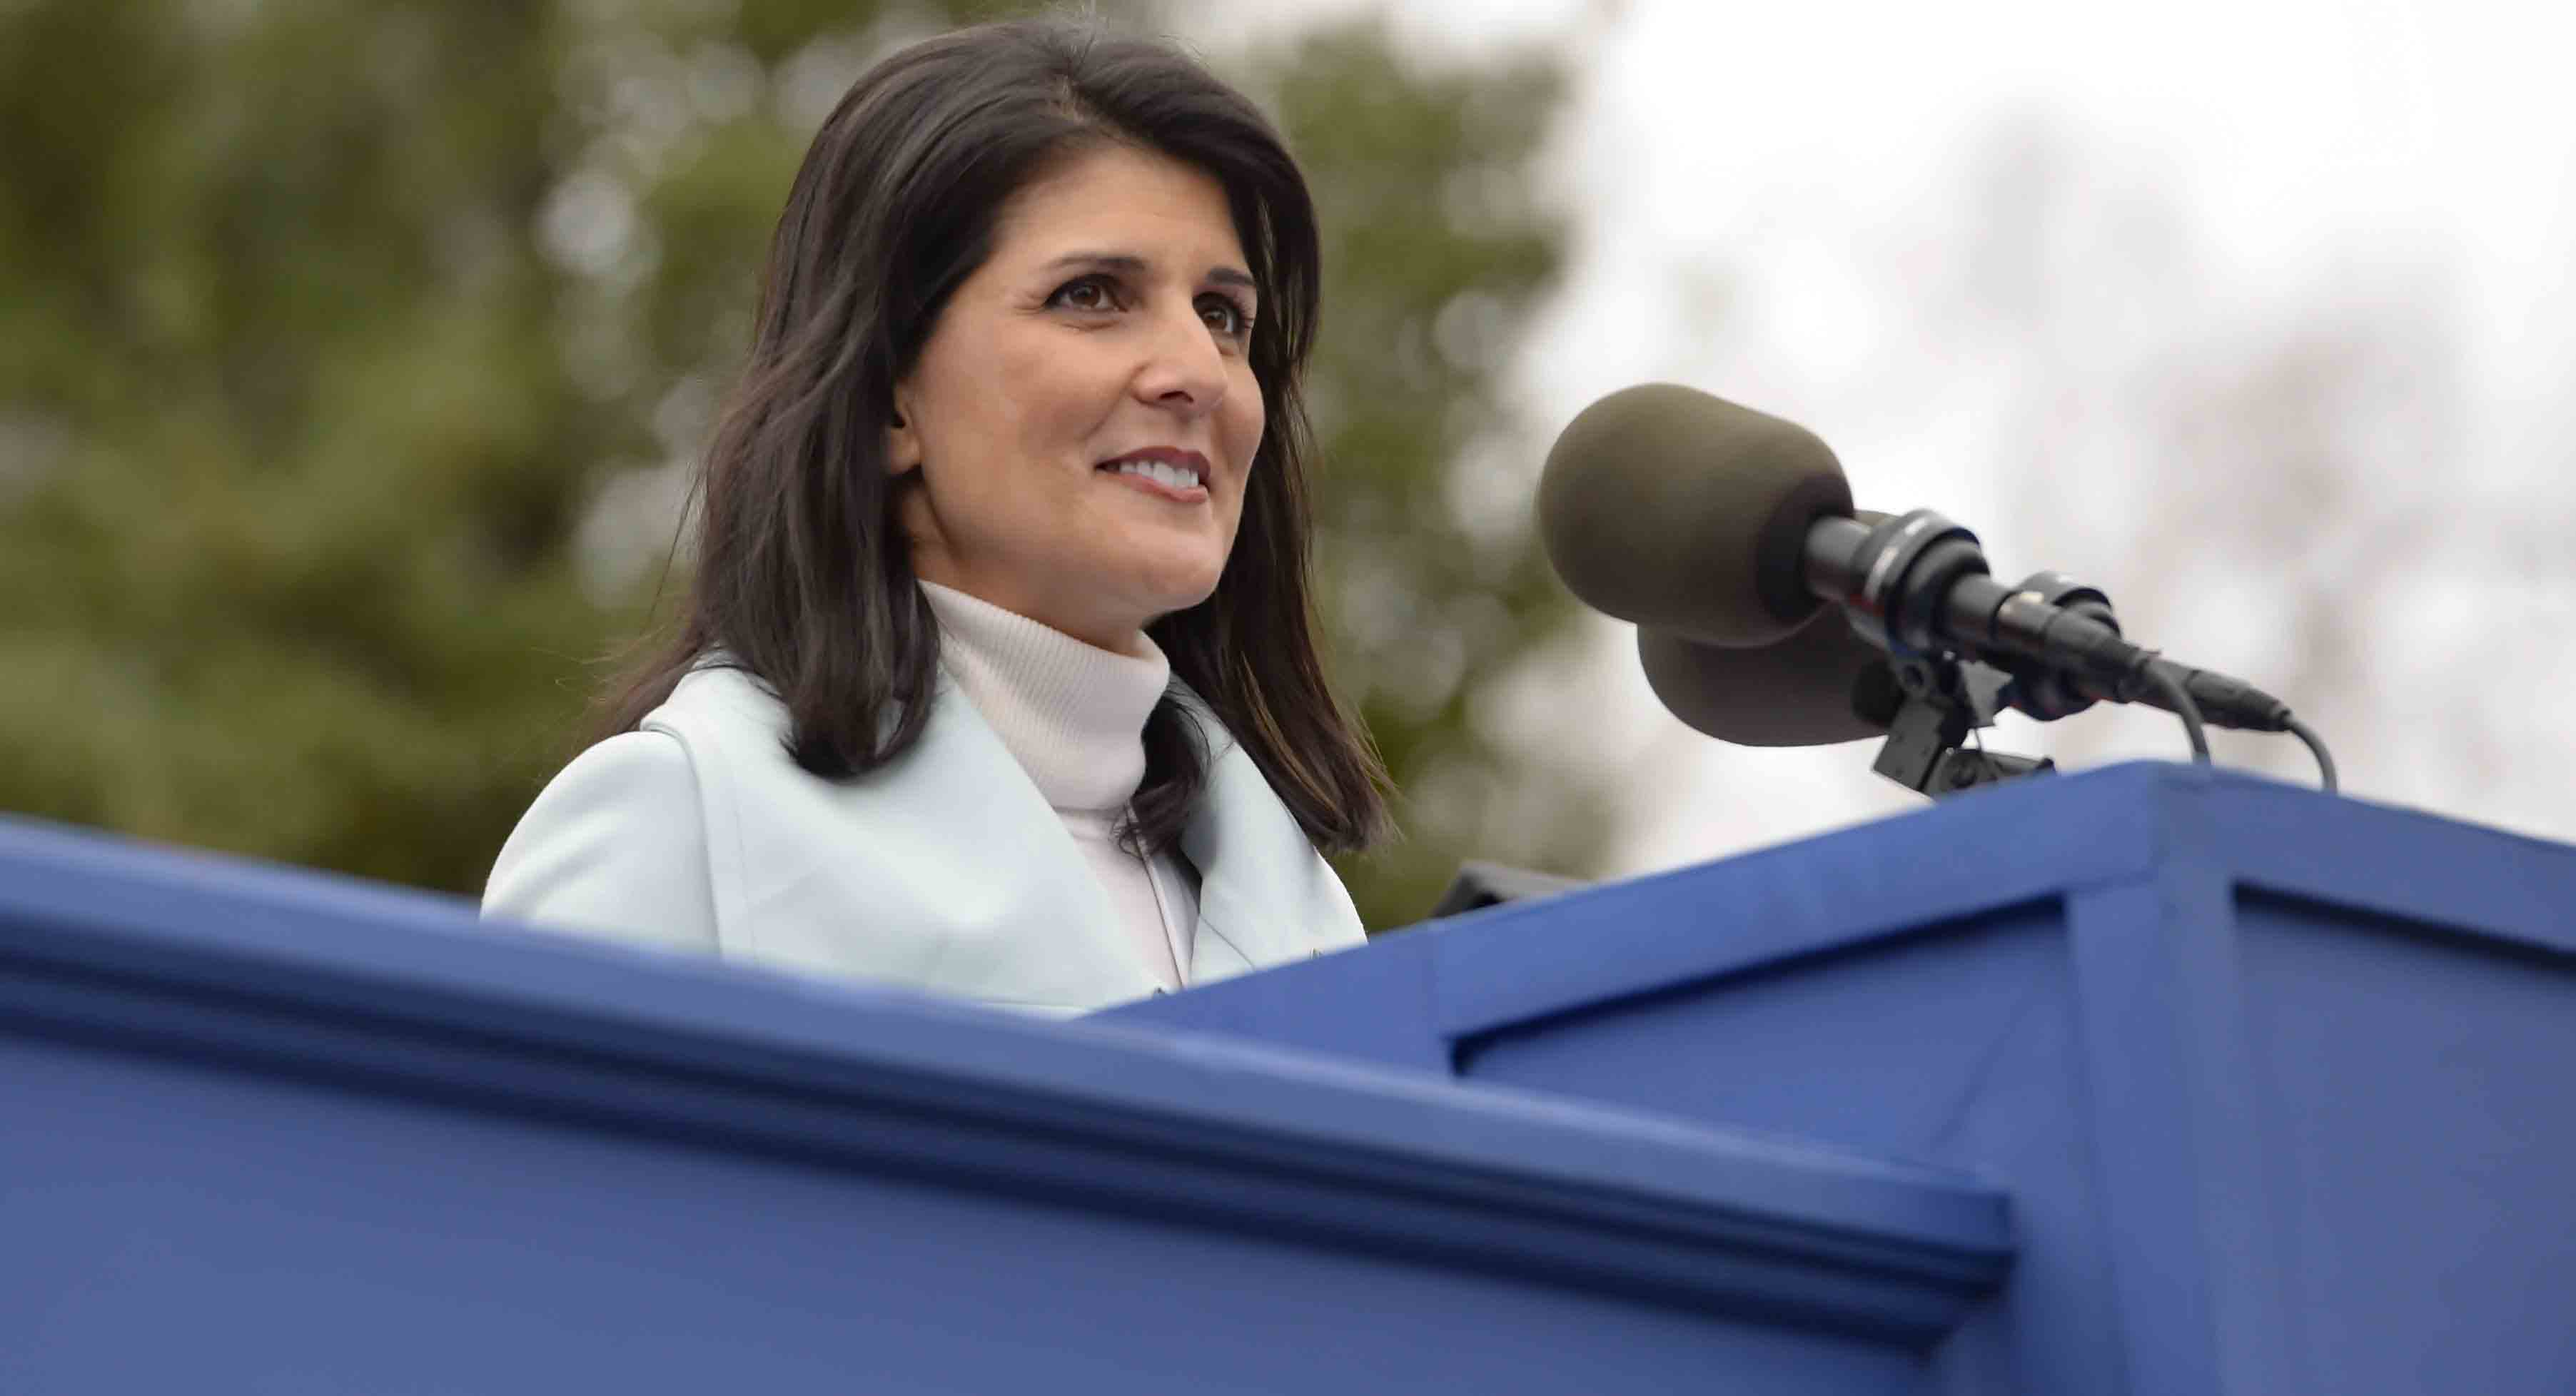 South Carolina Gov. Nikki Haley speaks to the crowd after being sworn in for her second term as governor, Wednesday, Jan. 14, 2015, at the state Capitol in Columbia, S.C.  (AP Photo/Richard Shiro)